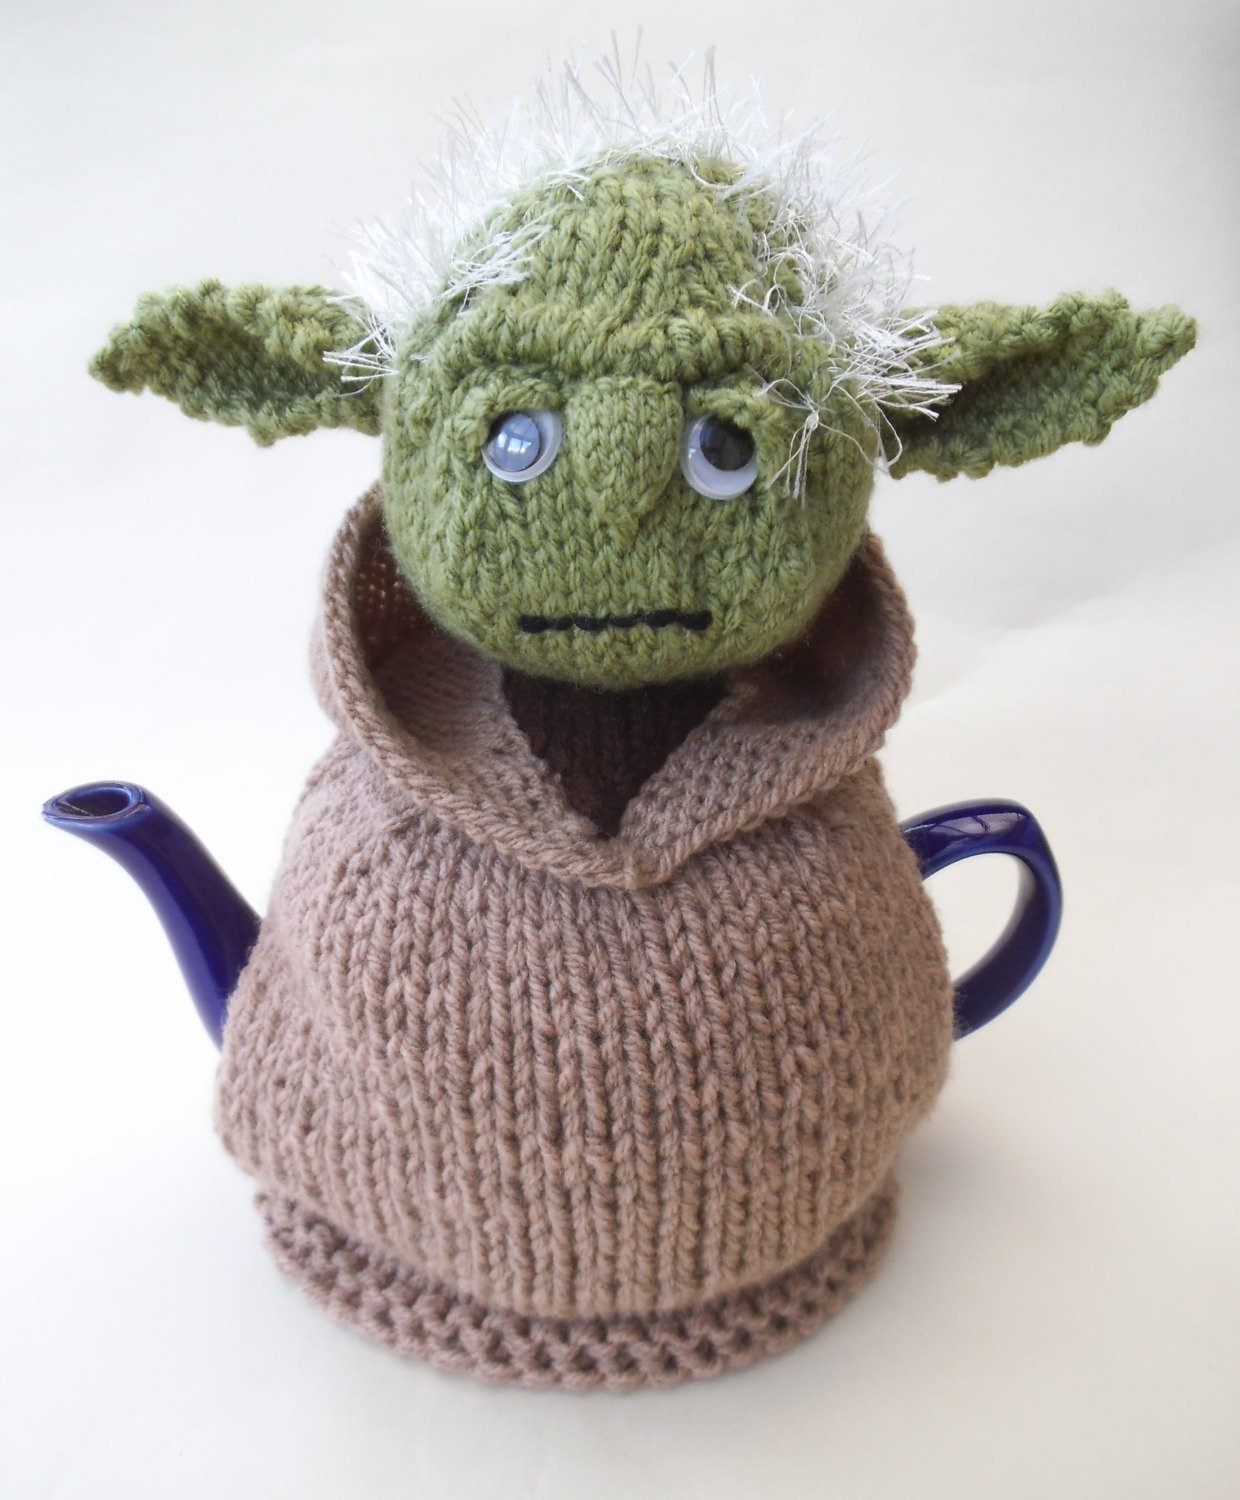 Starwars Yoda Tea Cosy Knitting Pattern